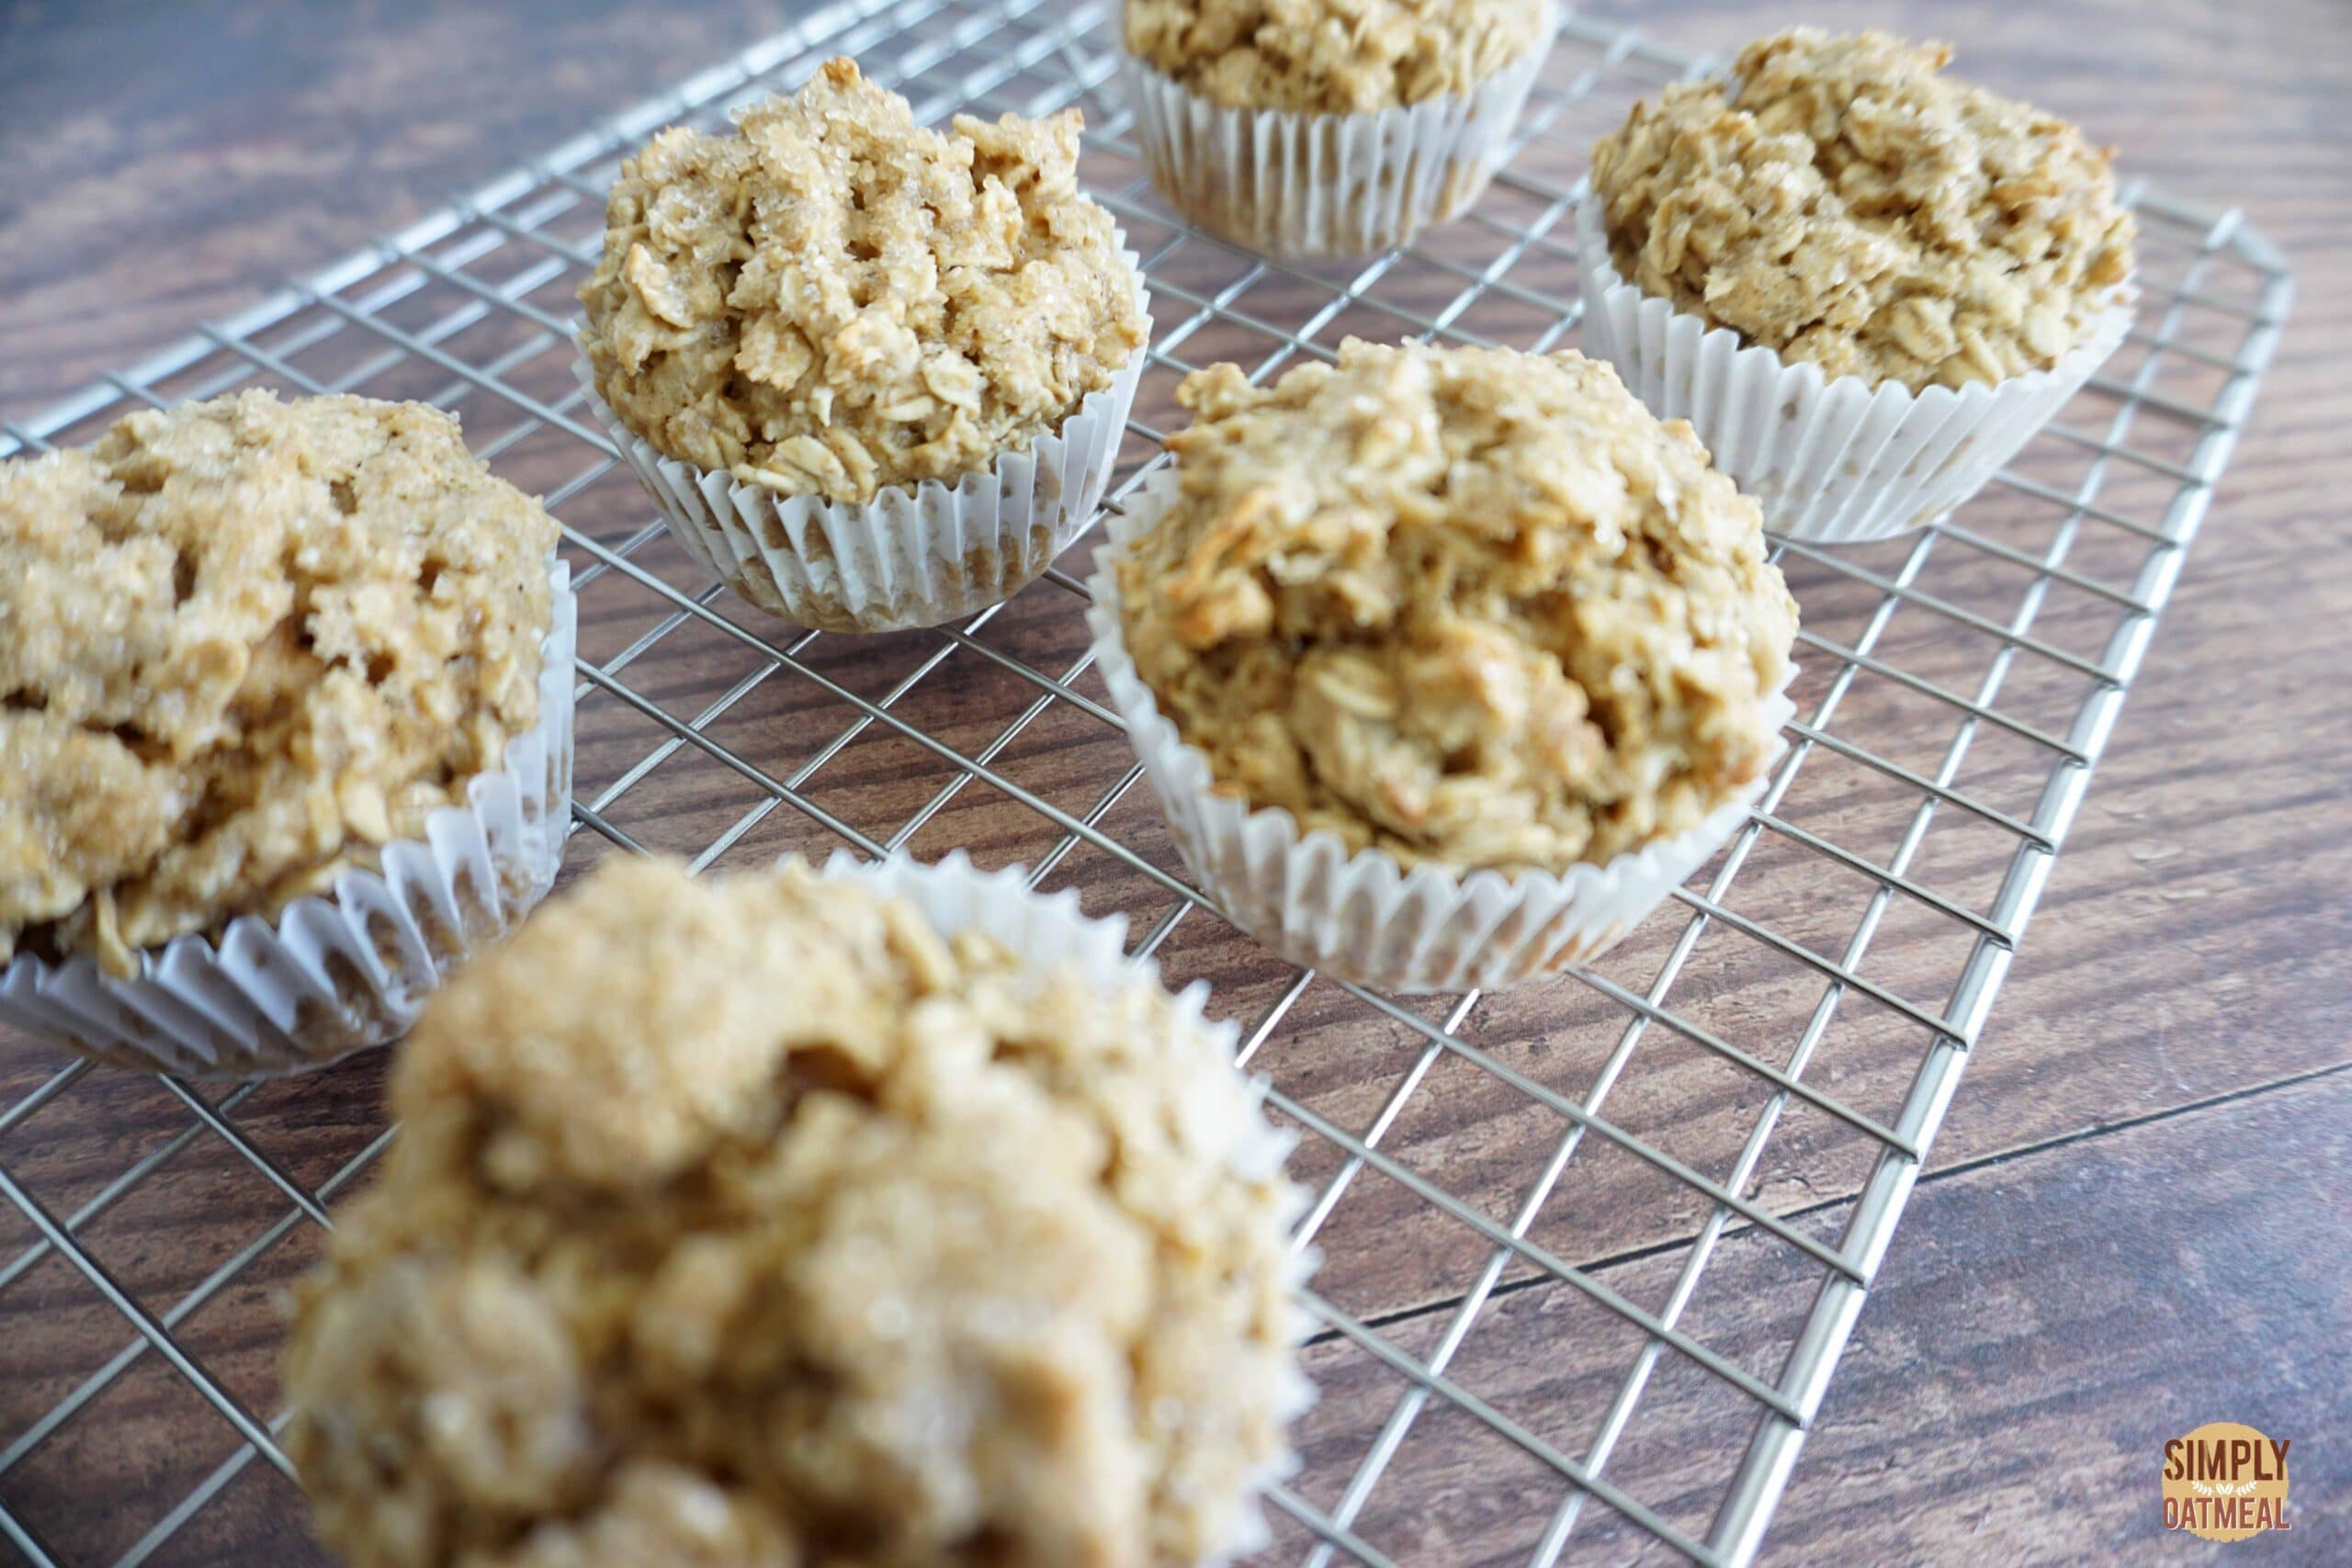 Maple brown sugar oatmeal muffins cooling on a wire rack